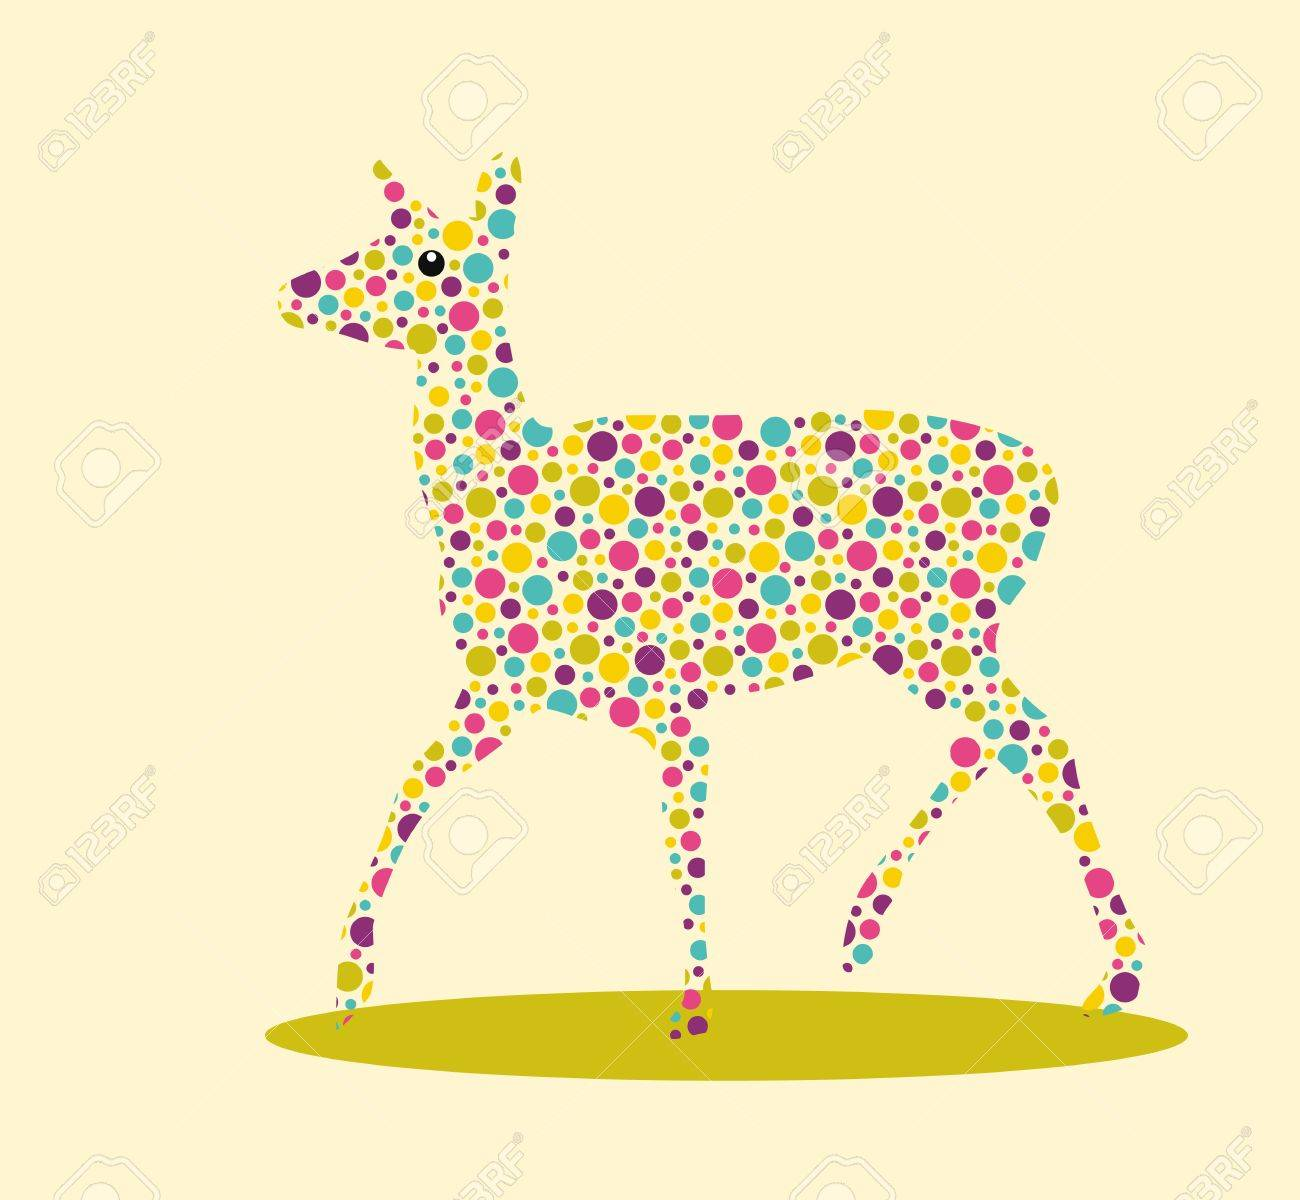 Silhouette of deer with colourful spotted pattern Stock Vector - 20169843